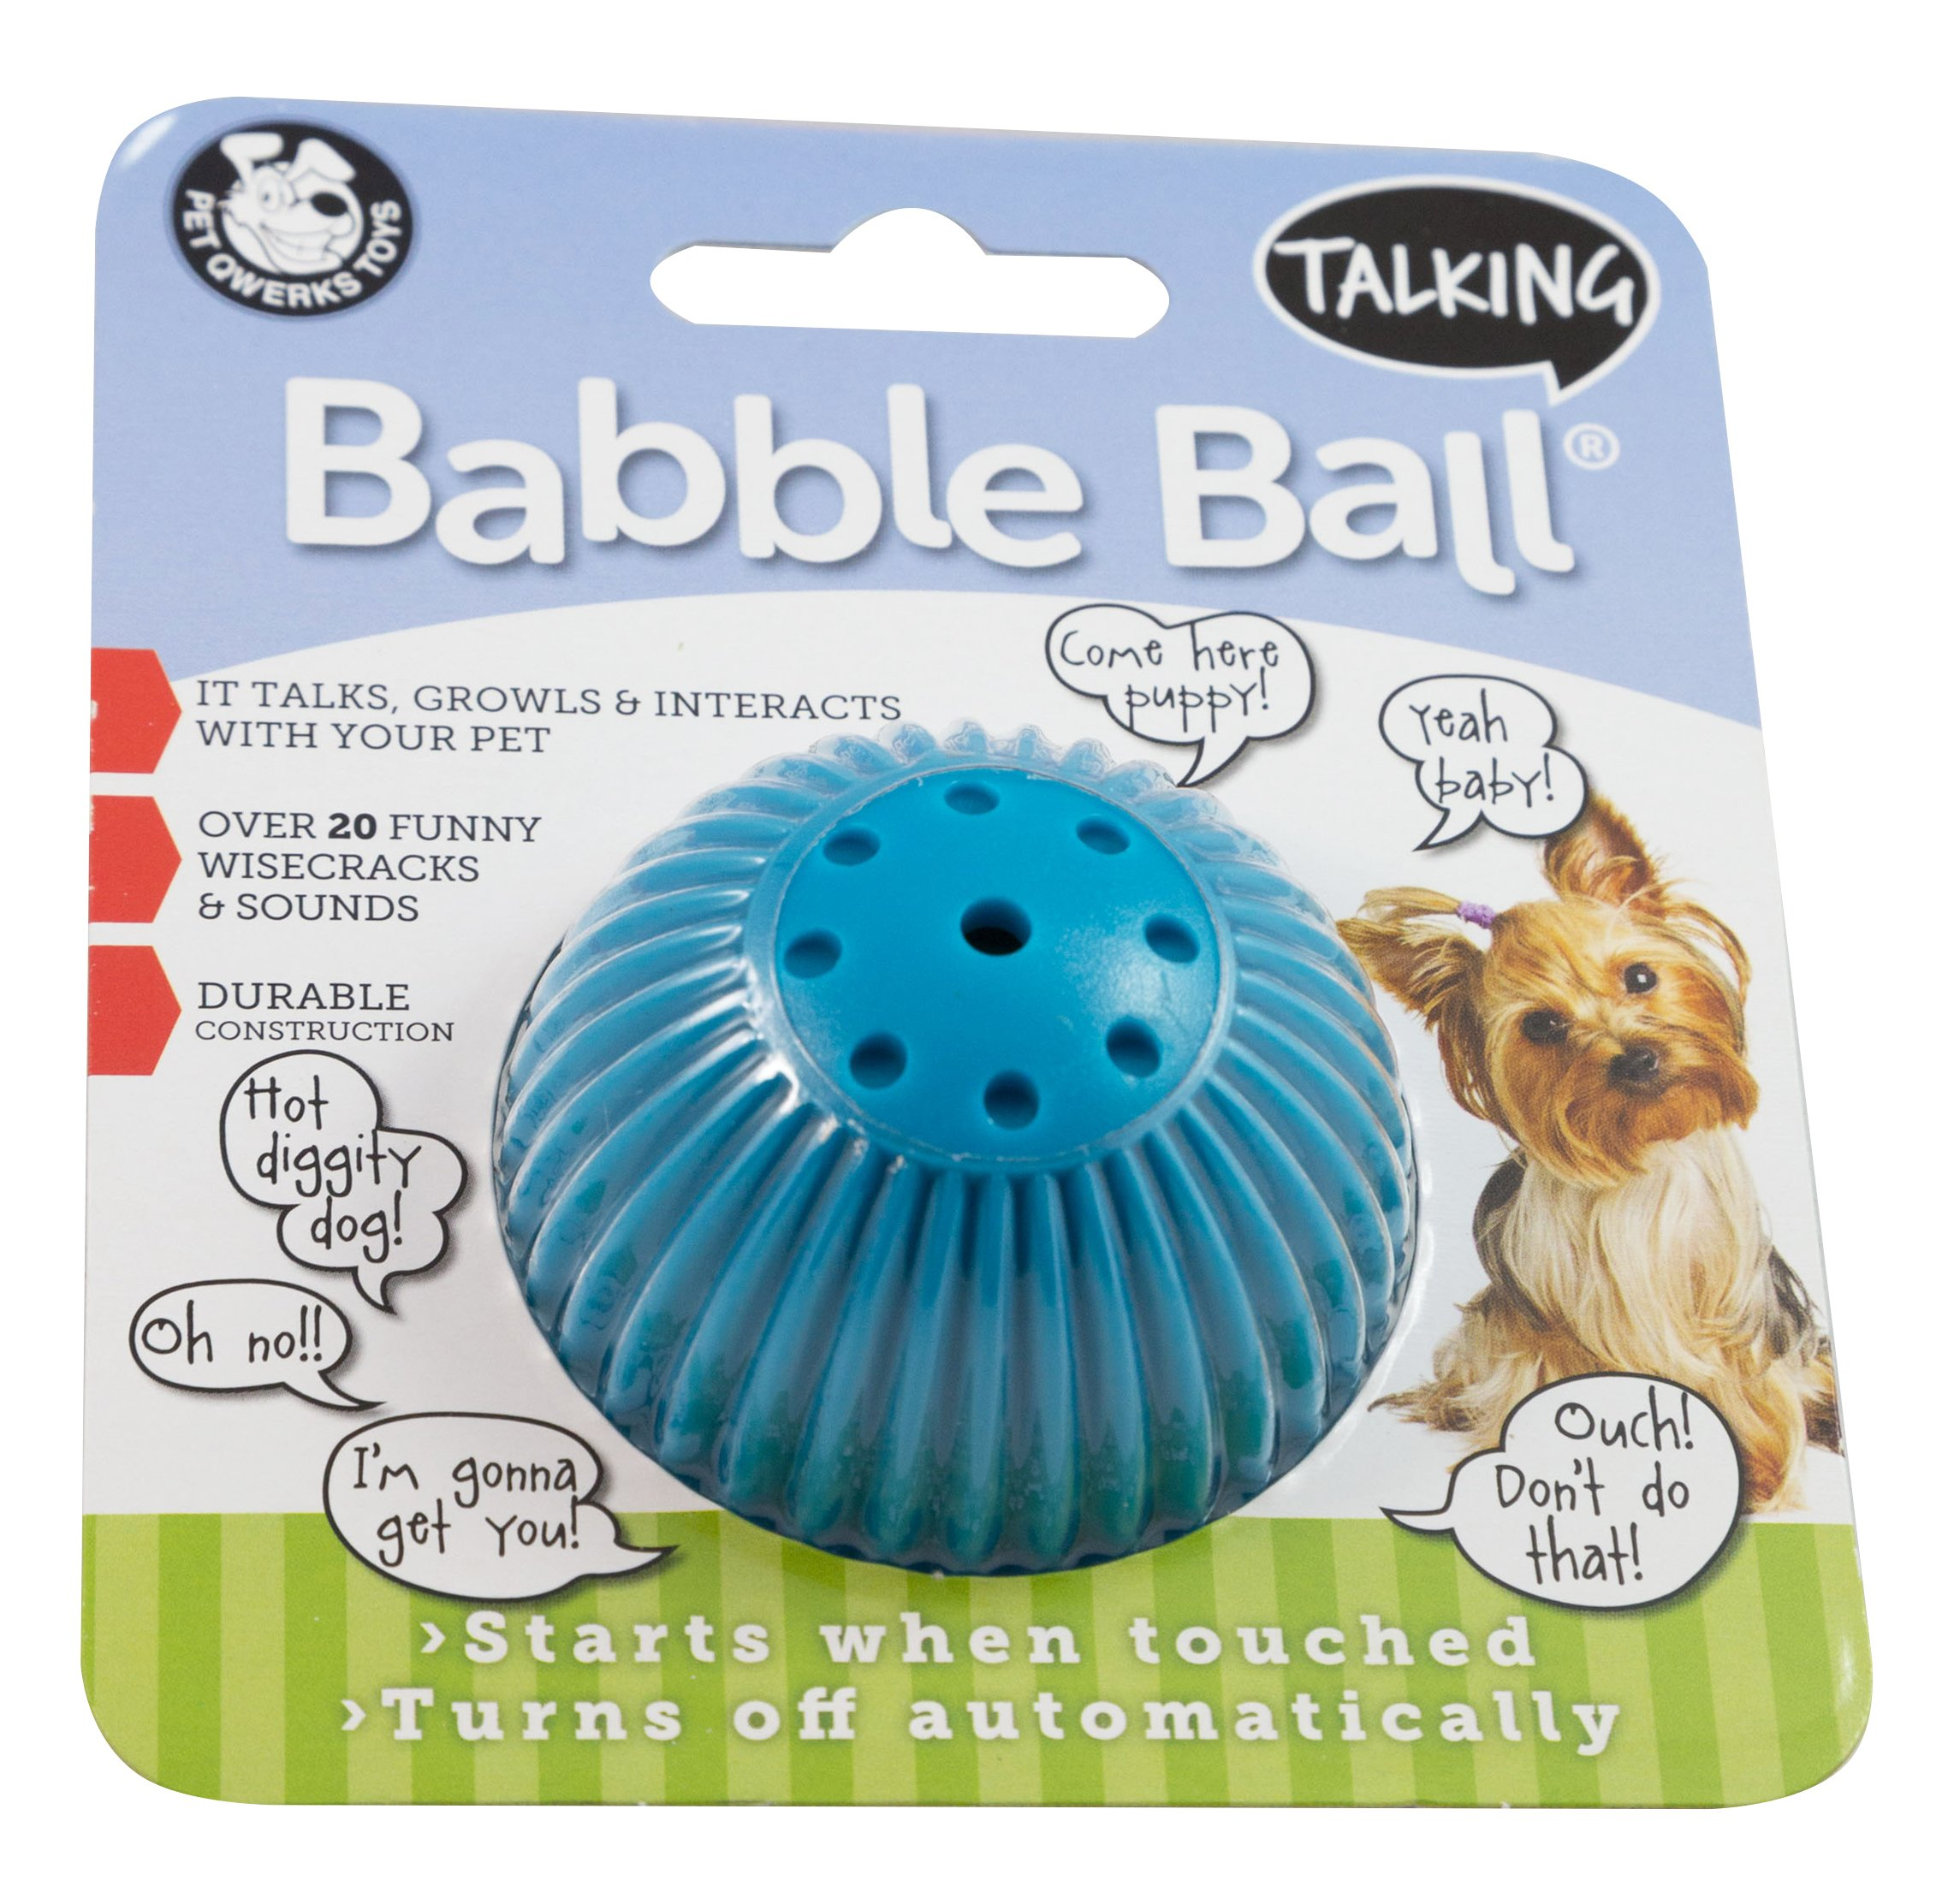 PetQwerks Talking Babble Ball Toy for Dogs and Cats, Small, 96-pack